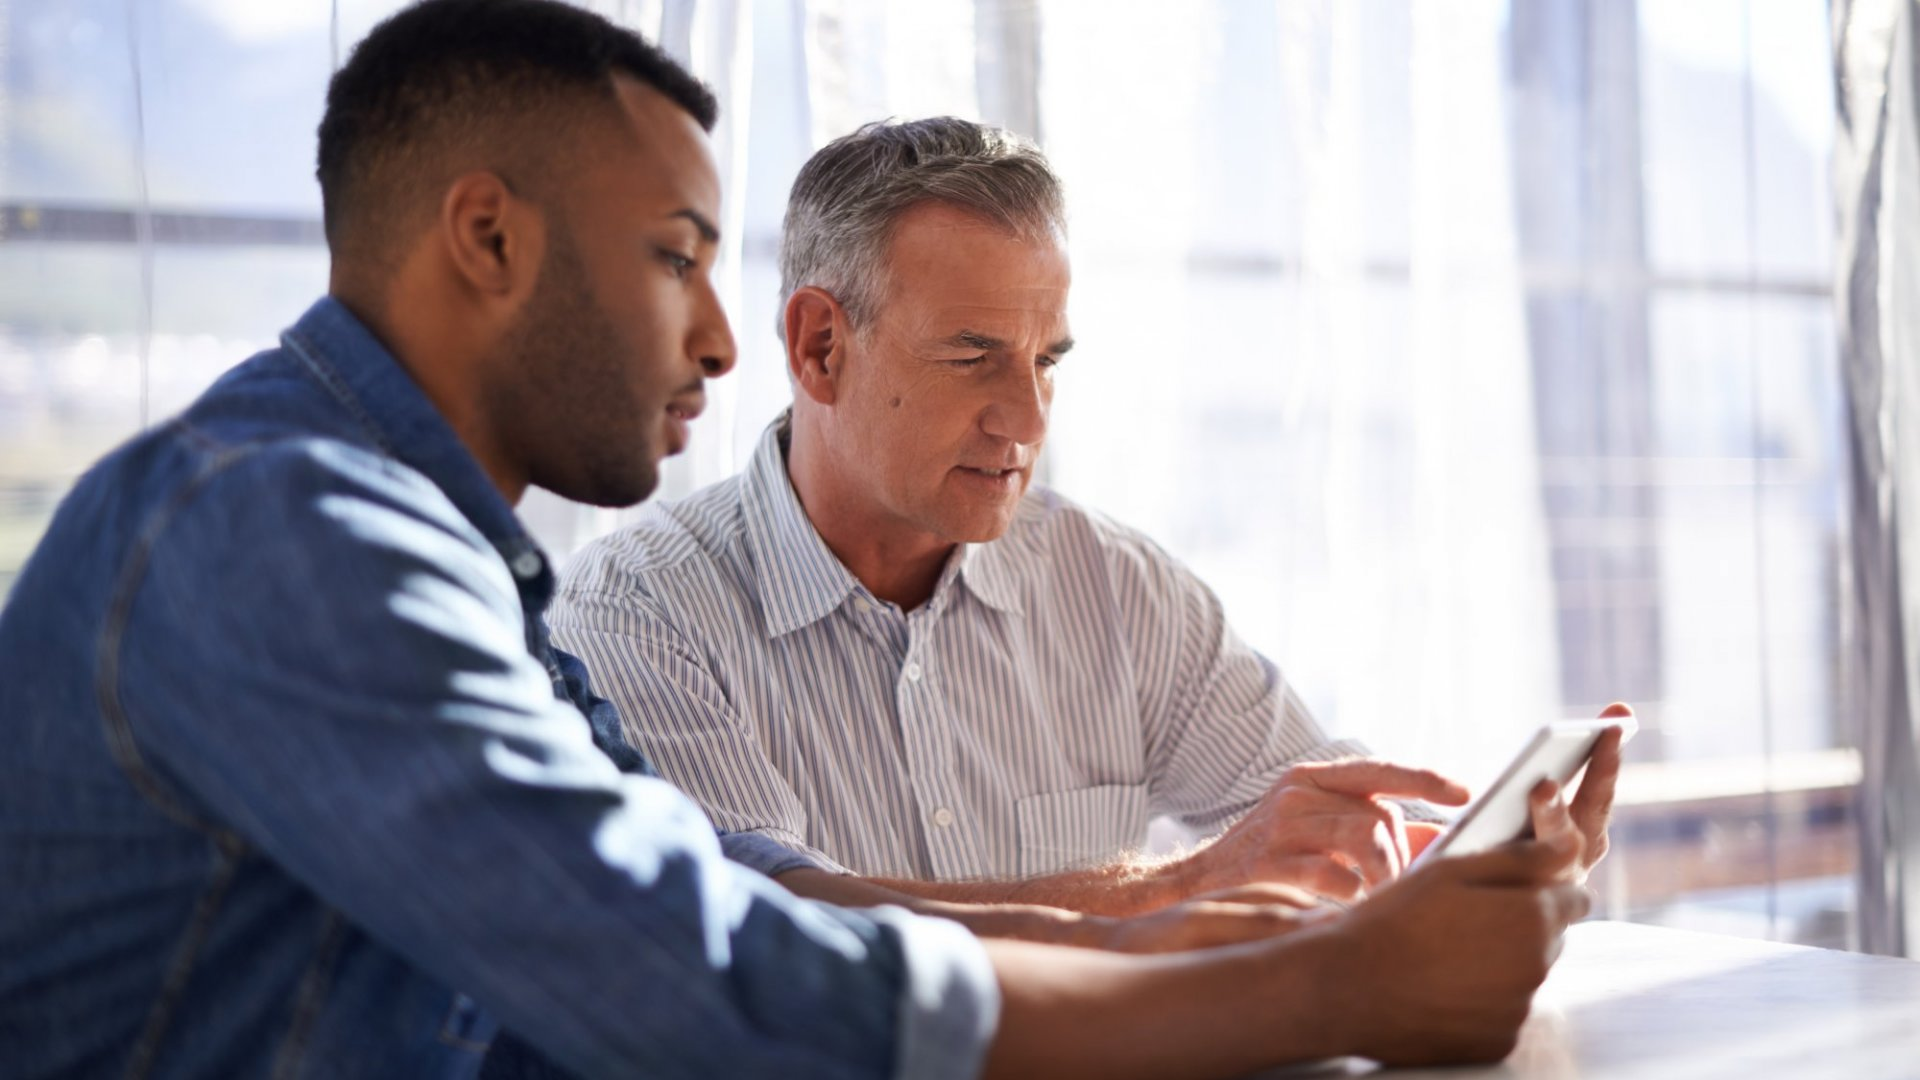 Good Mentors Help Drive Results and Business Growth